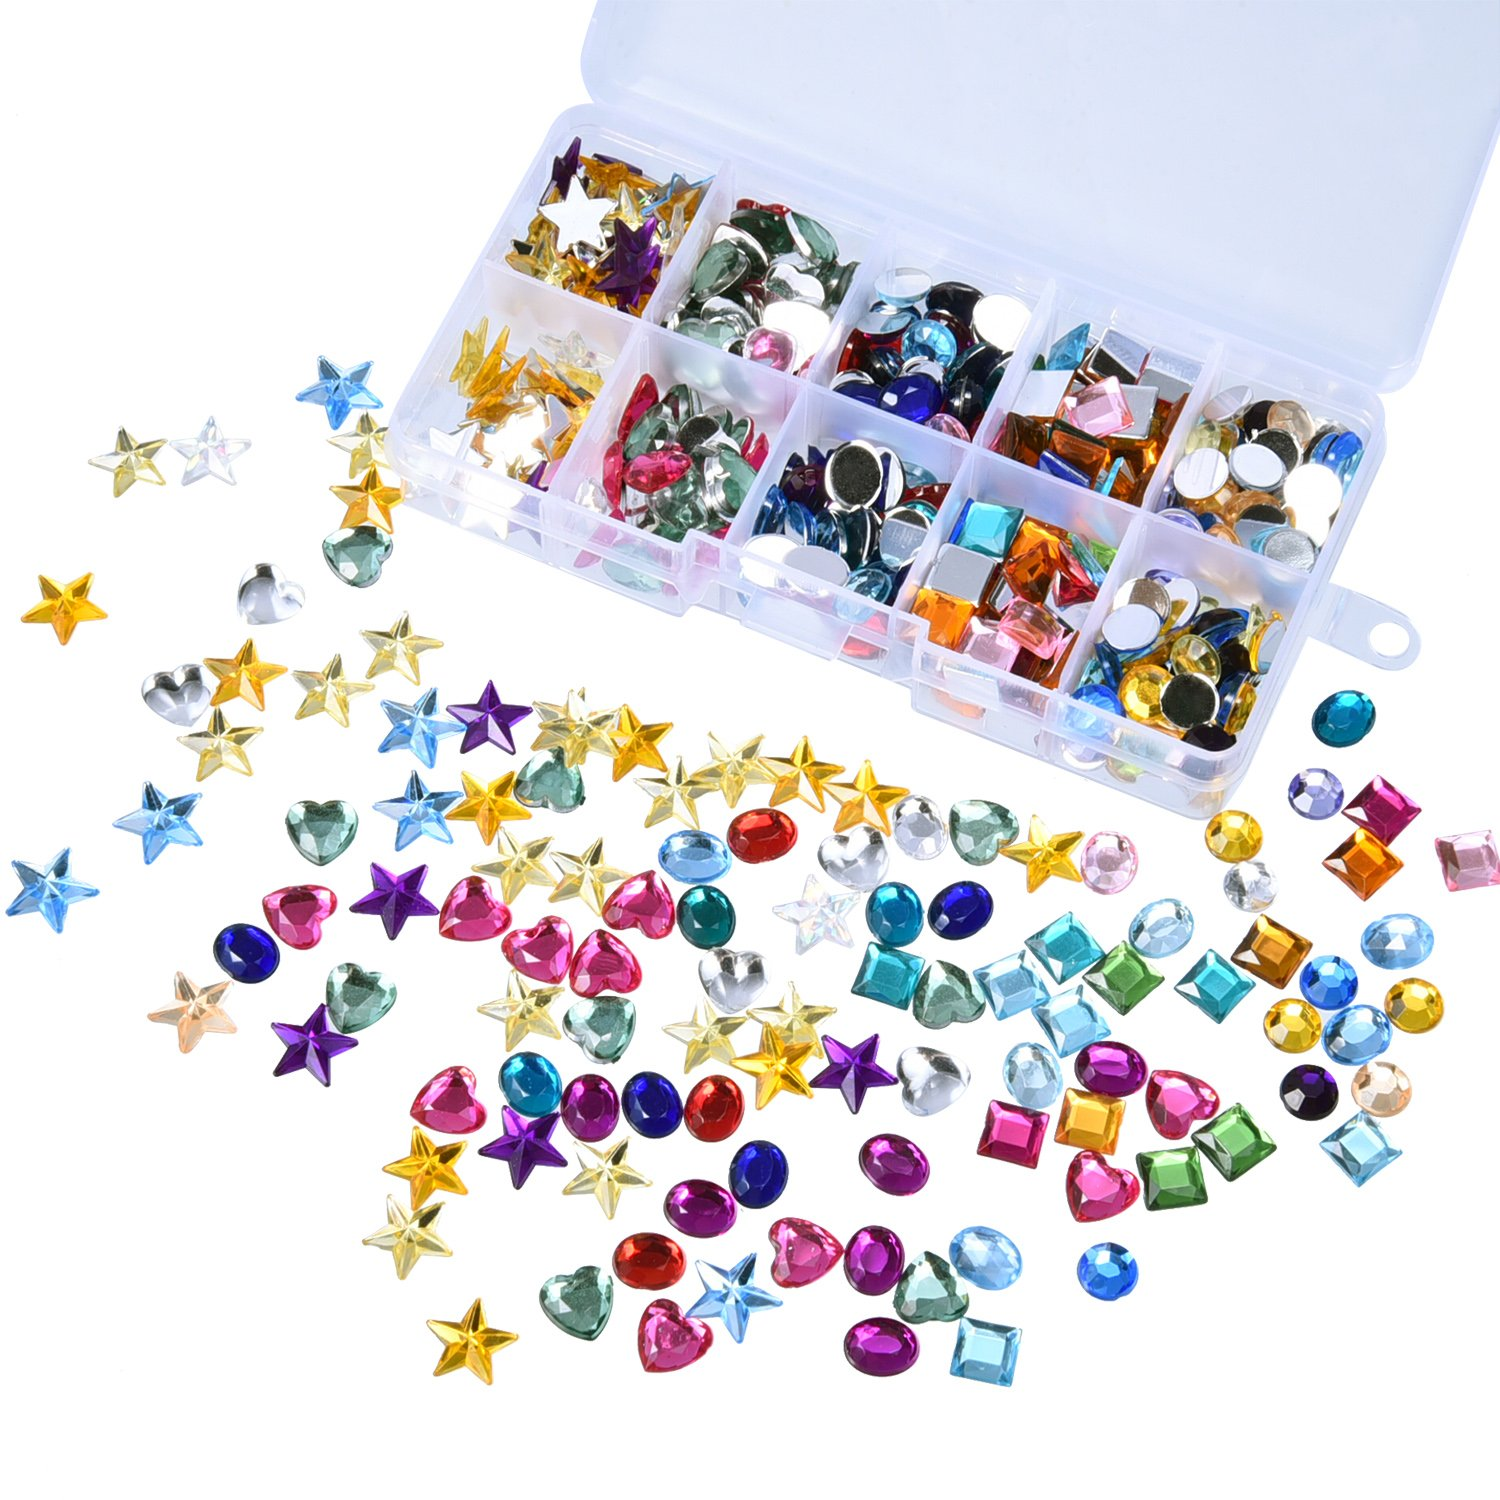 Outus 500 Pieces Gems Flatback Rhinestones Acrylic Craft Jewels Gemstone Embellishments, Heart Star Square Oval, Round, with Plastic Storage Box, Assorted Color